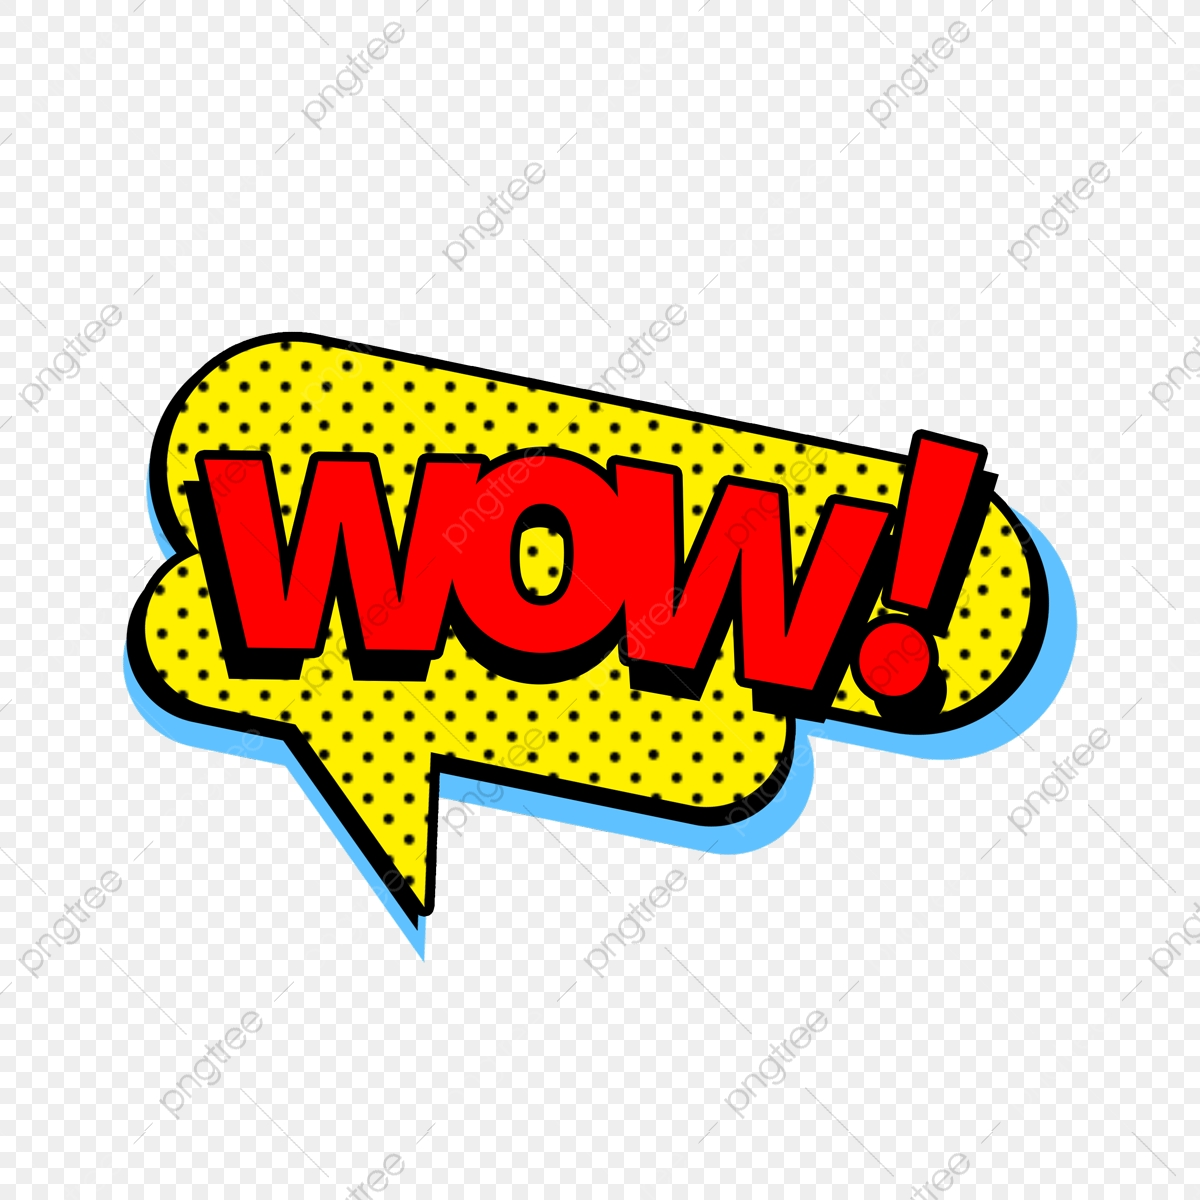 Wow PNG Images   Vector and PSD Files   Free Download on Pngtree